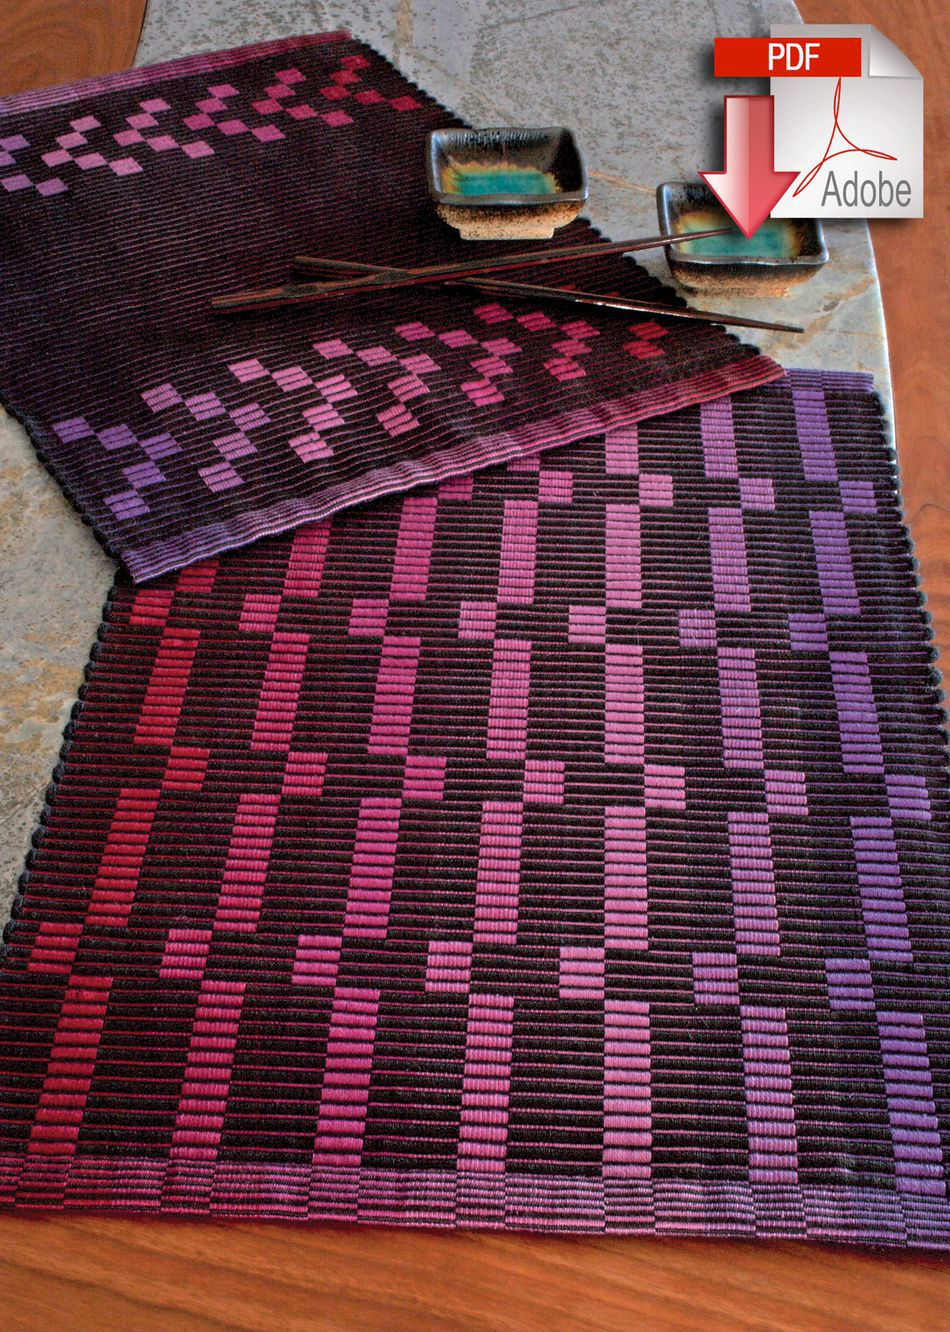 Weaving Patterns Rep Weave Placemat Pattern  102 Pearl Cotton  Pattern download